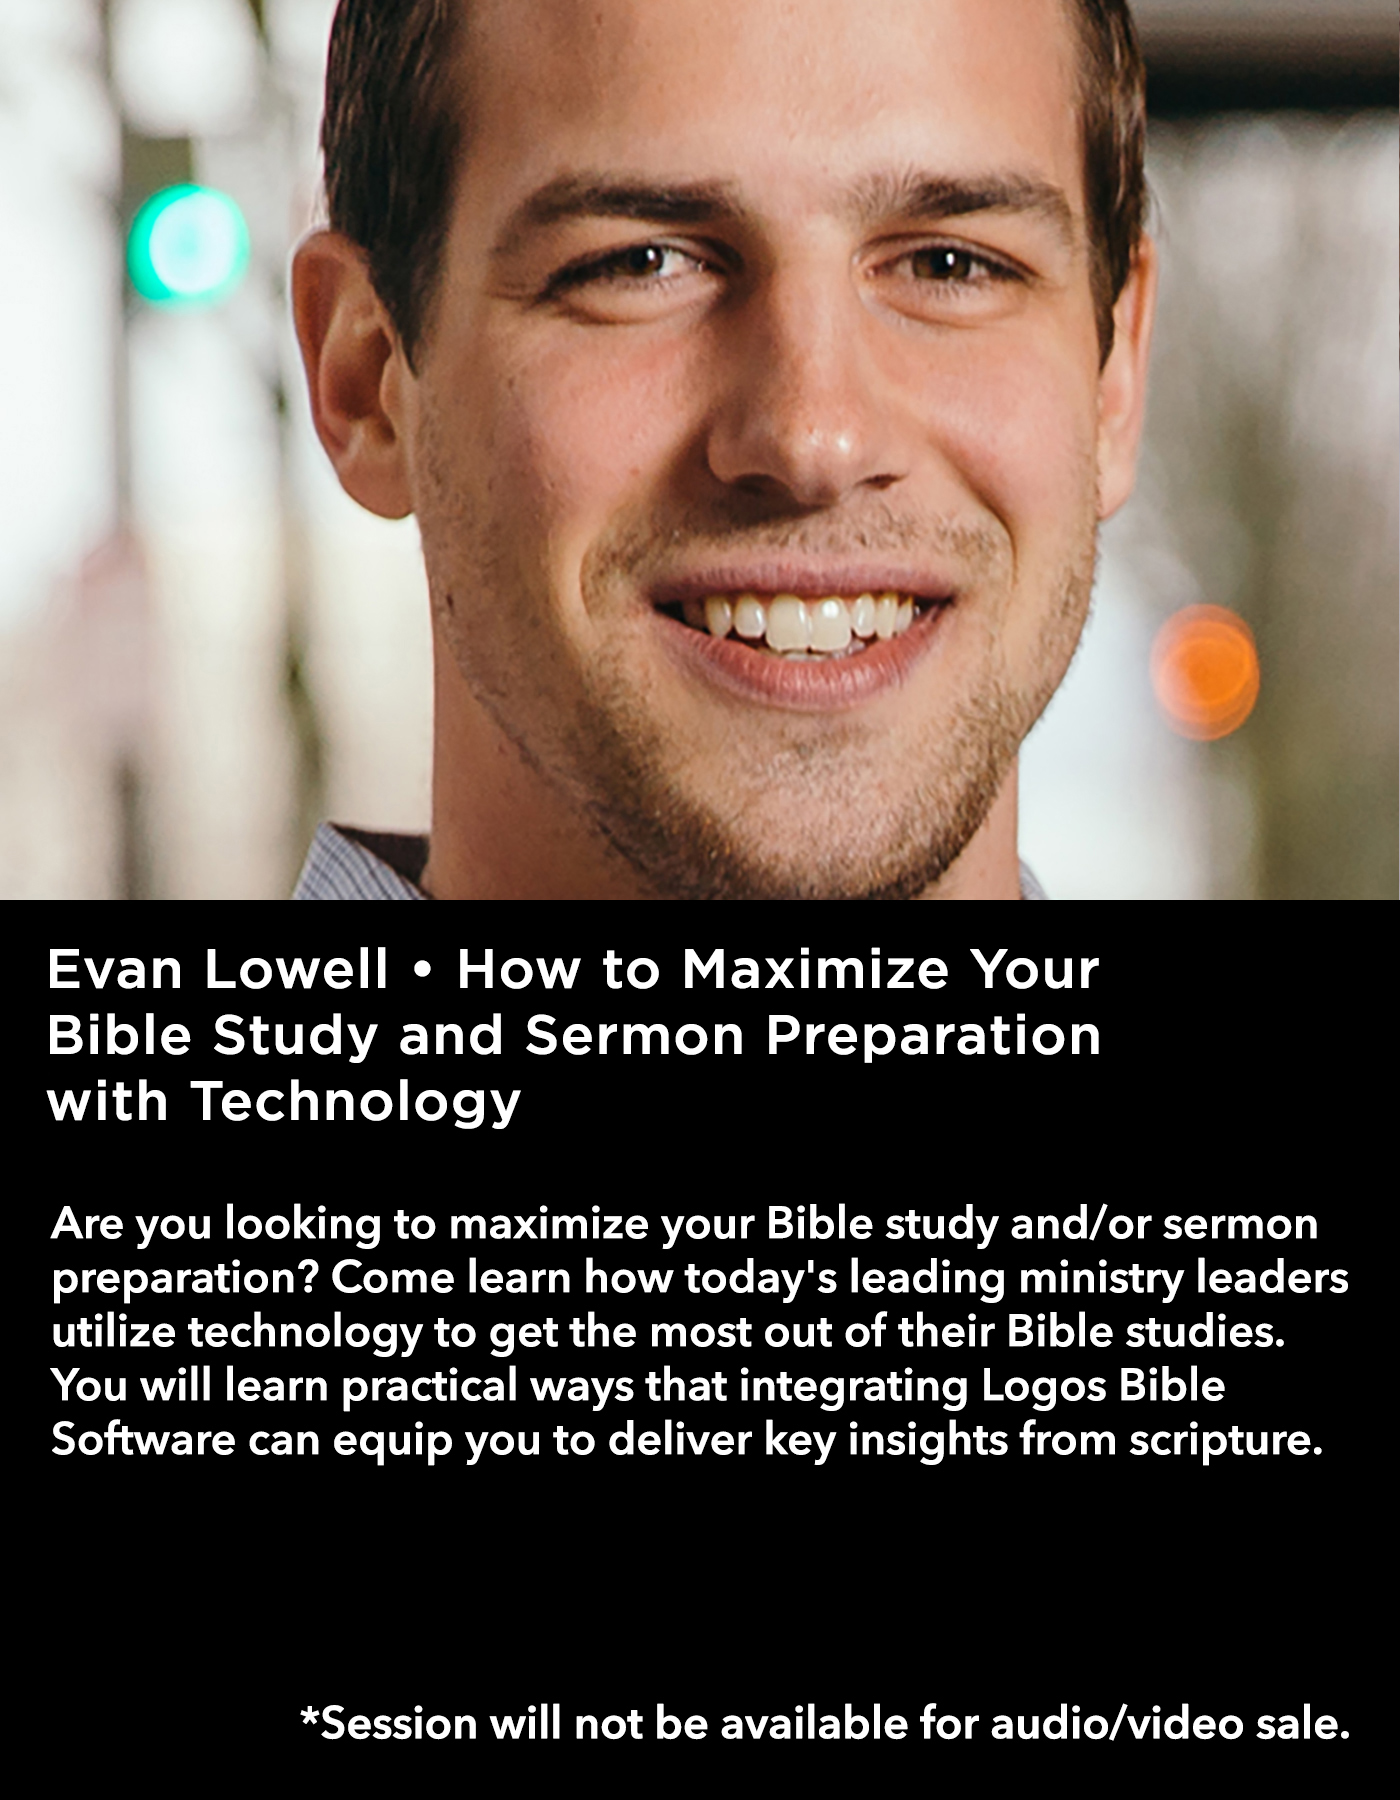 Evan Lowell • How to Maximize Your Bible Study and Sermon Preparation with Technology • Friday Morning, March 17 • 10:30 – 11:45 am